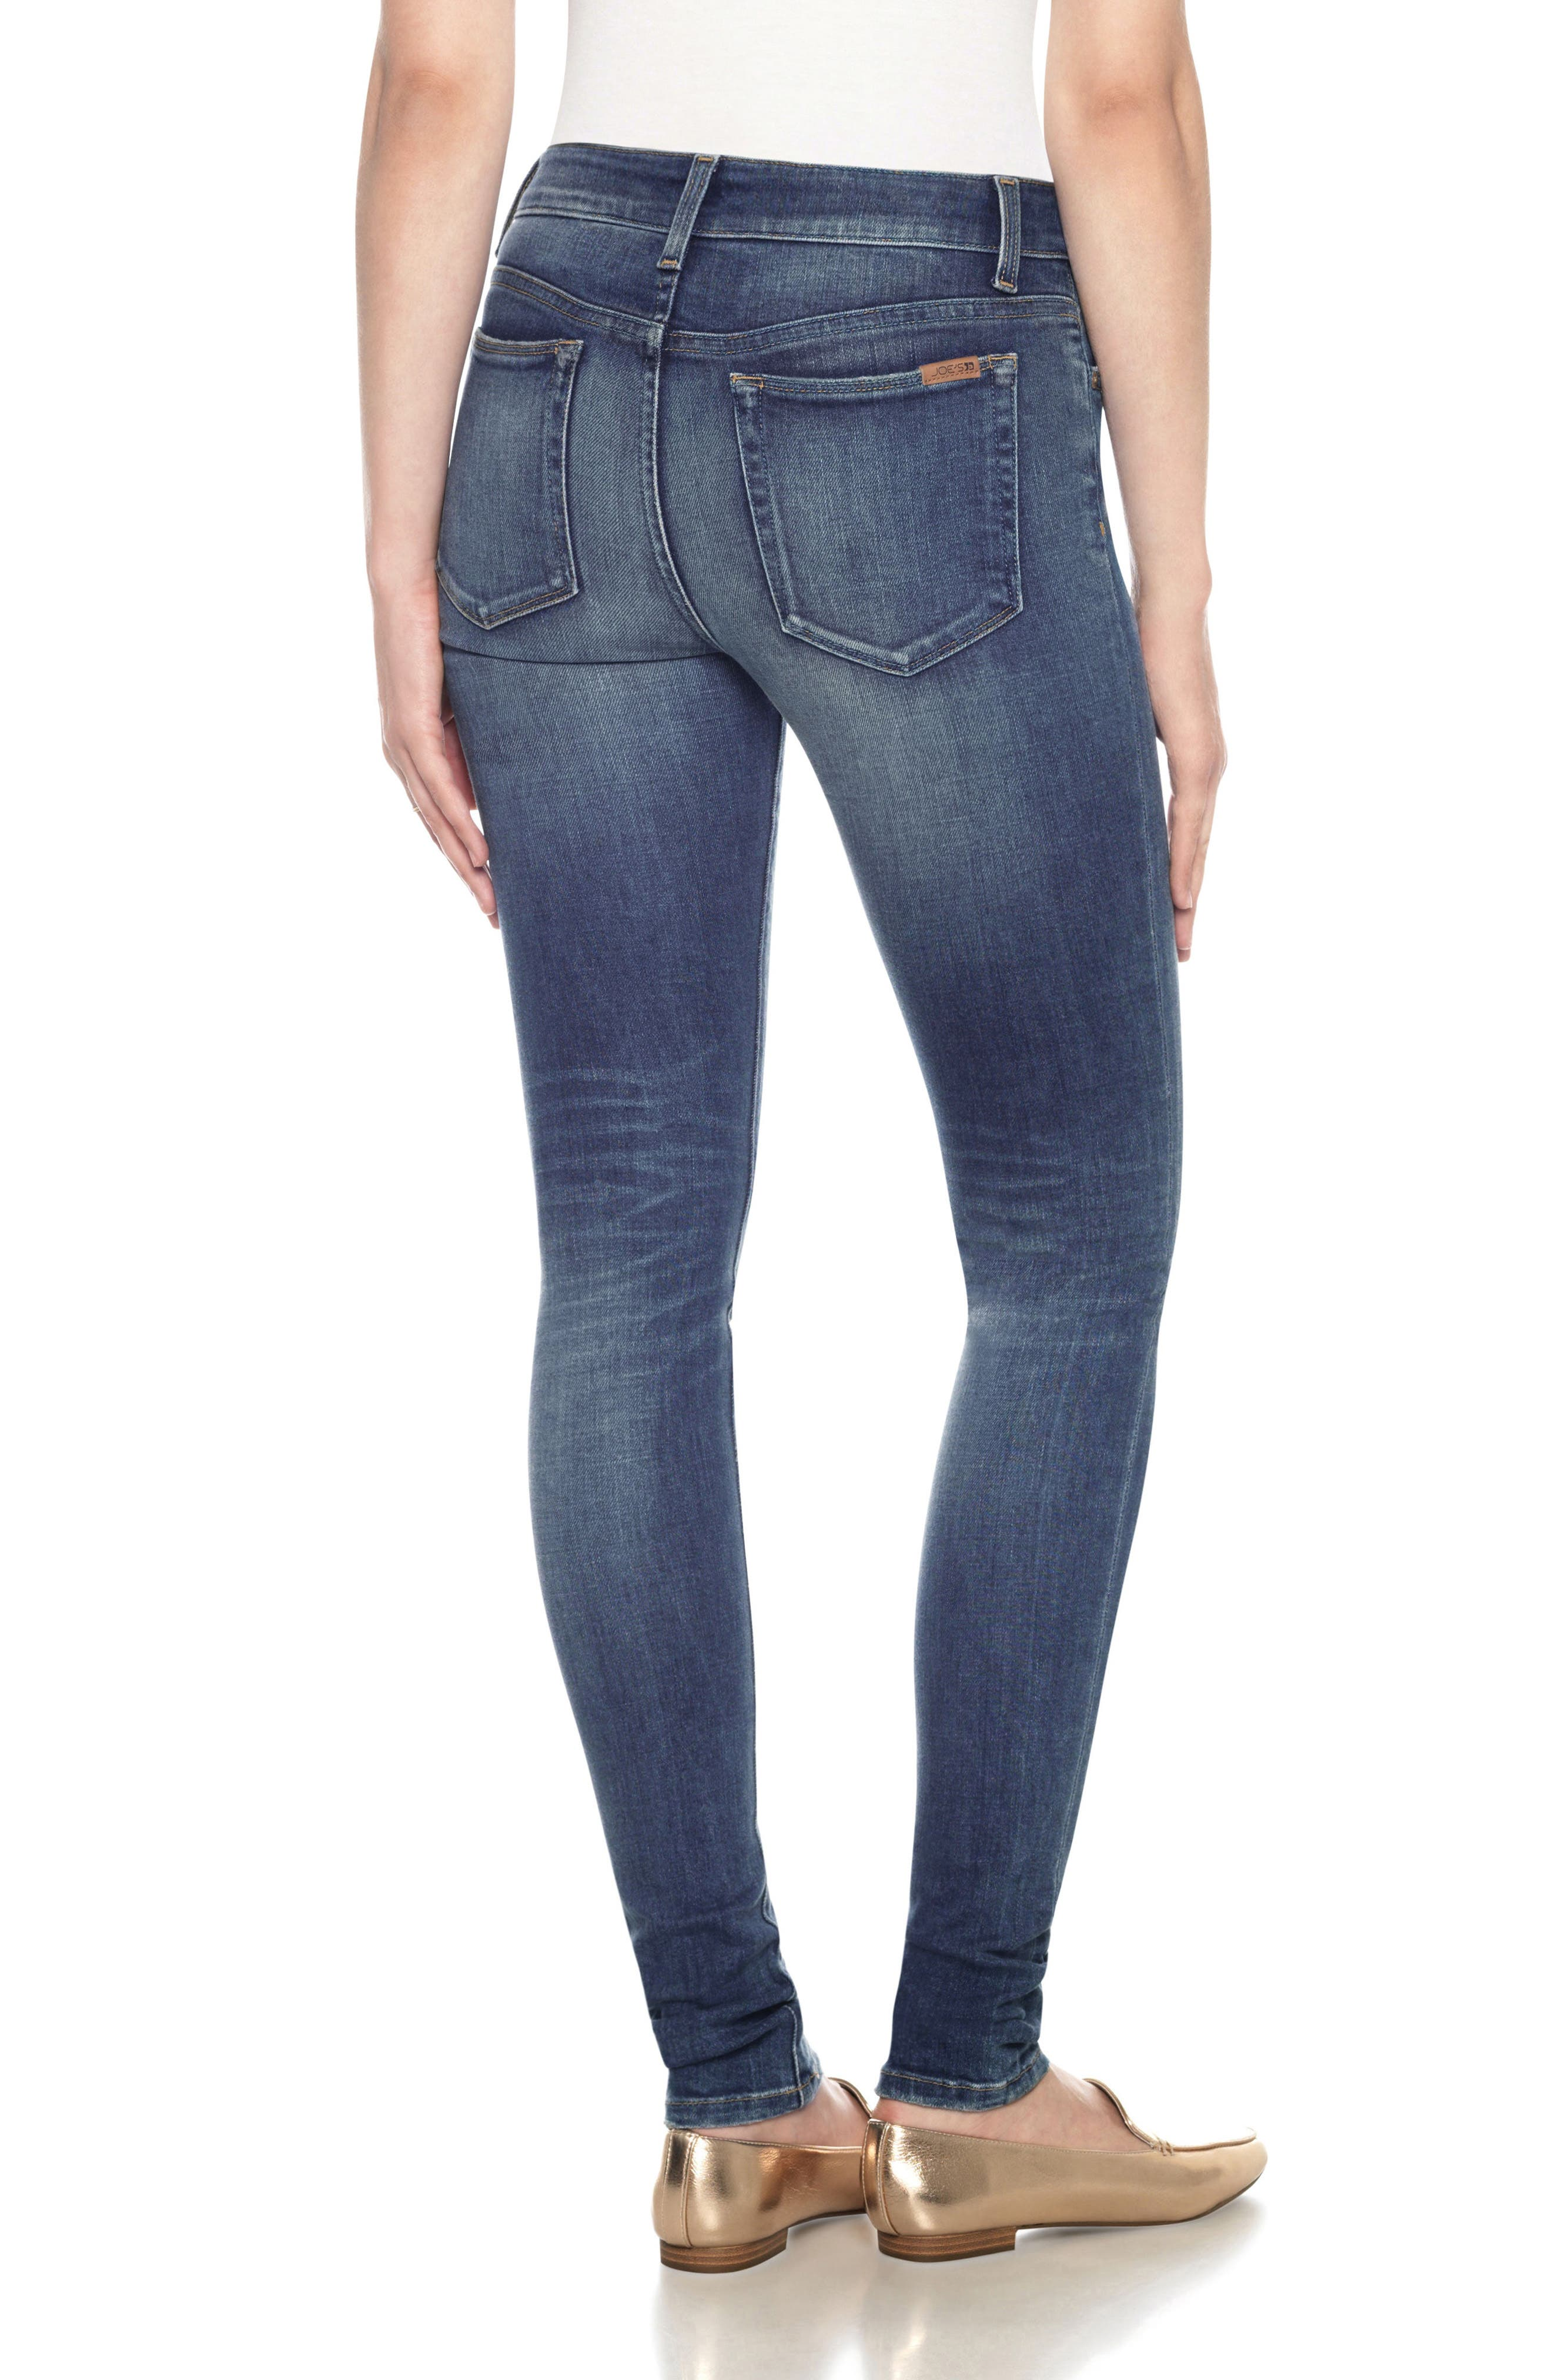 Twiggy Skinny Jeans,                             Alternate thumbnail 2, color,                             Kinney